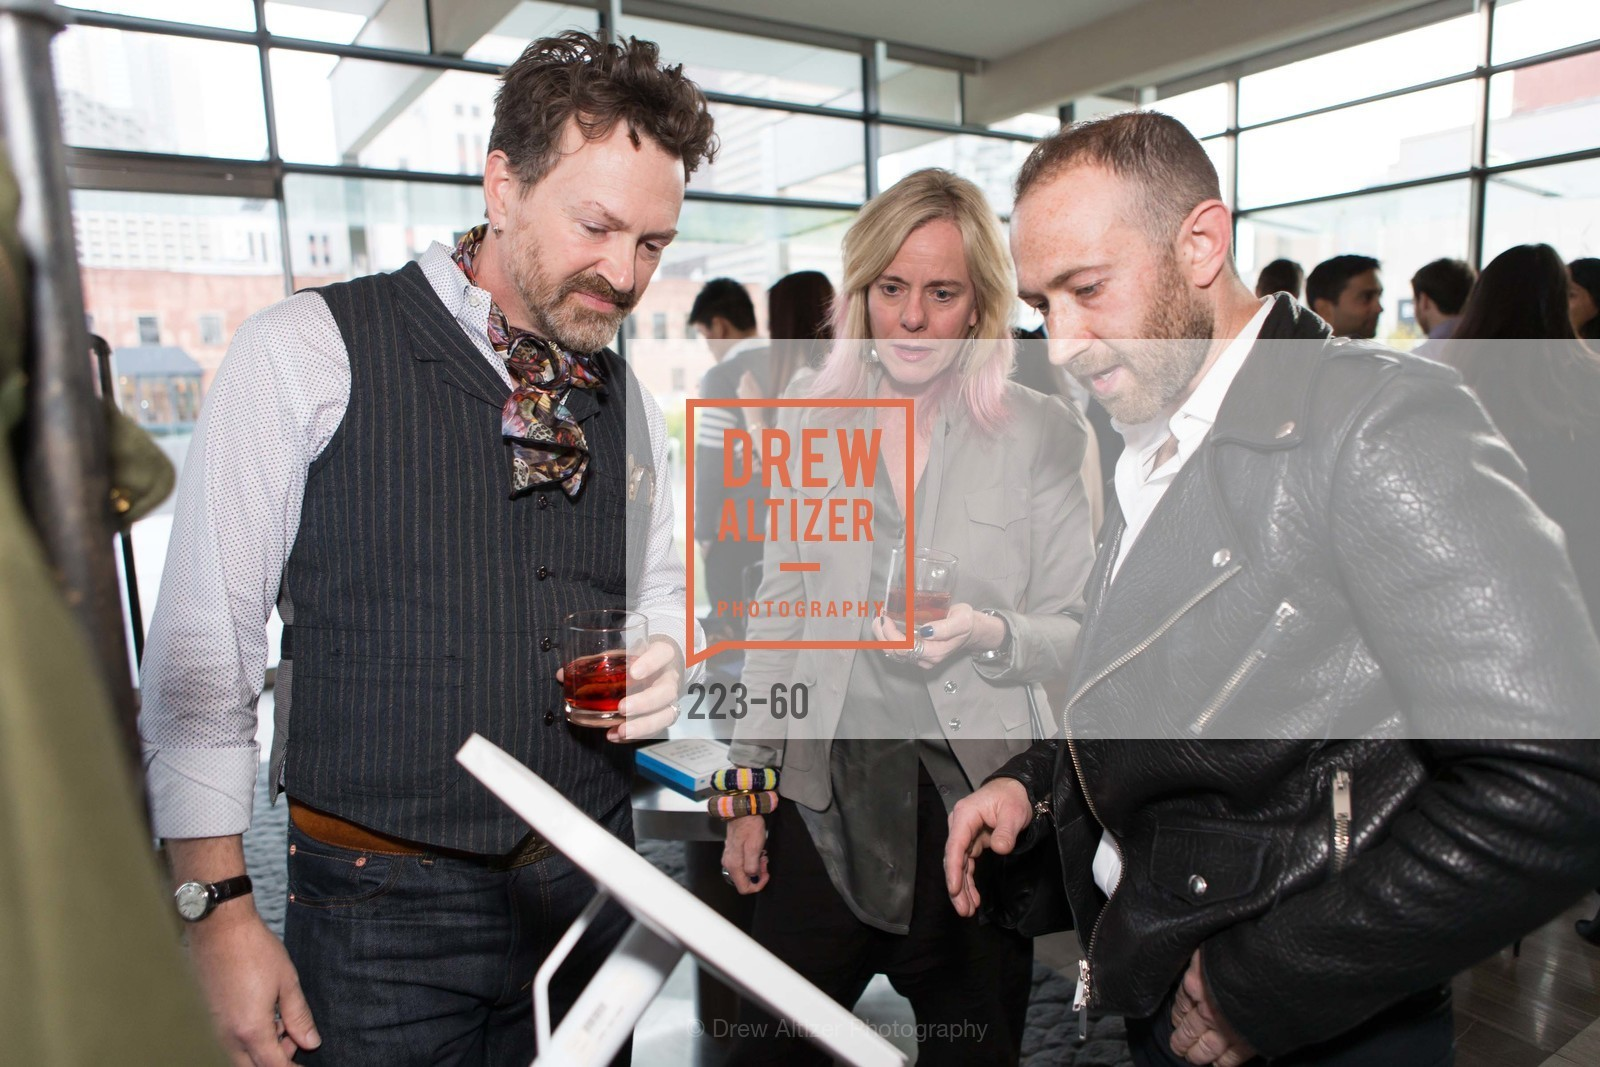 Paul D'Orleans, Susan McLaughlin, MR PORTER Celebrate The San Francisco Issue of The Journal, The Battery Rooftop - The Battery SF, April 23rd, 2015,Drew Altizer, Drew Altizer Photography, full-service event agency, private events, San Francisco photographer, photographer California